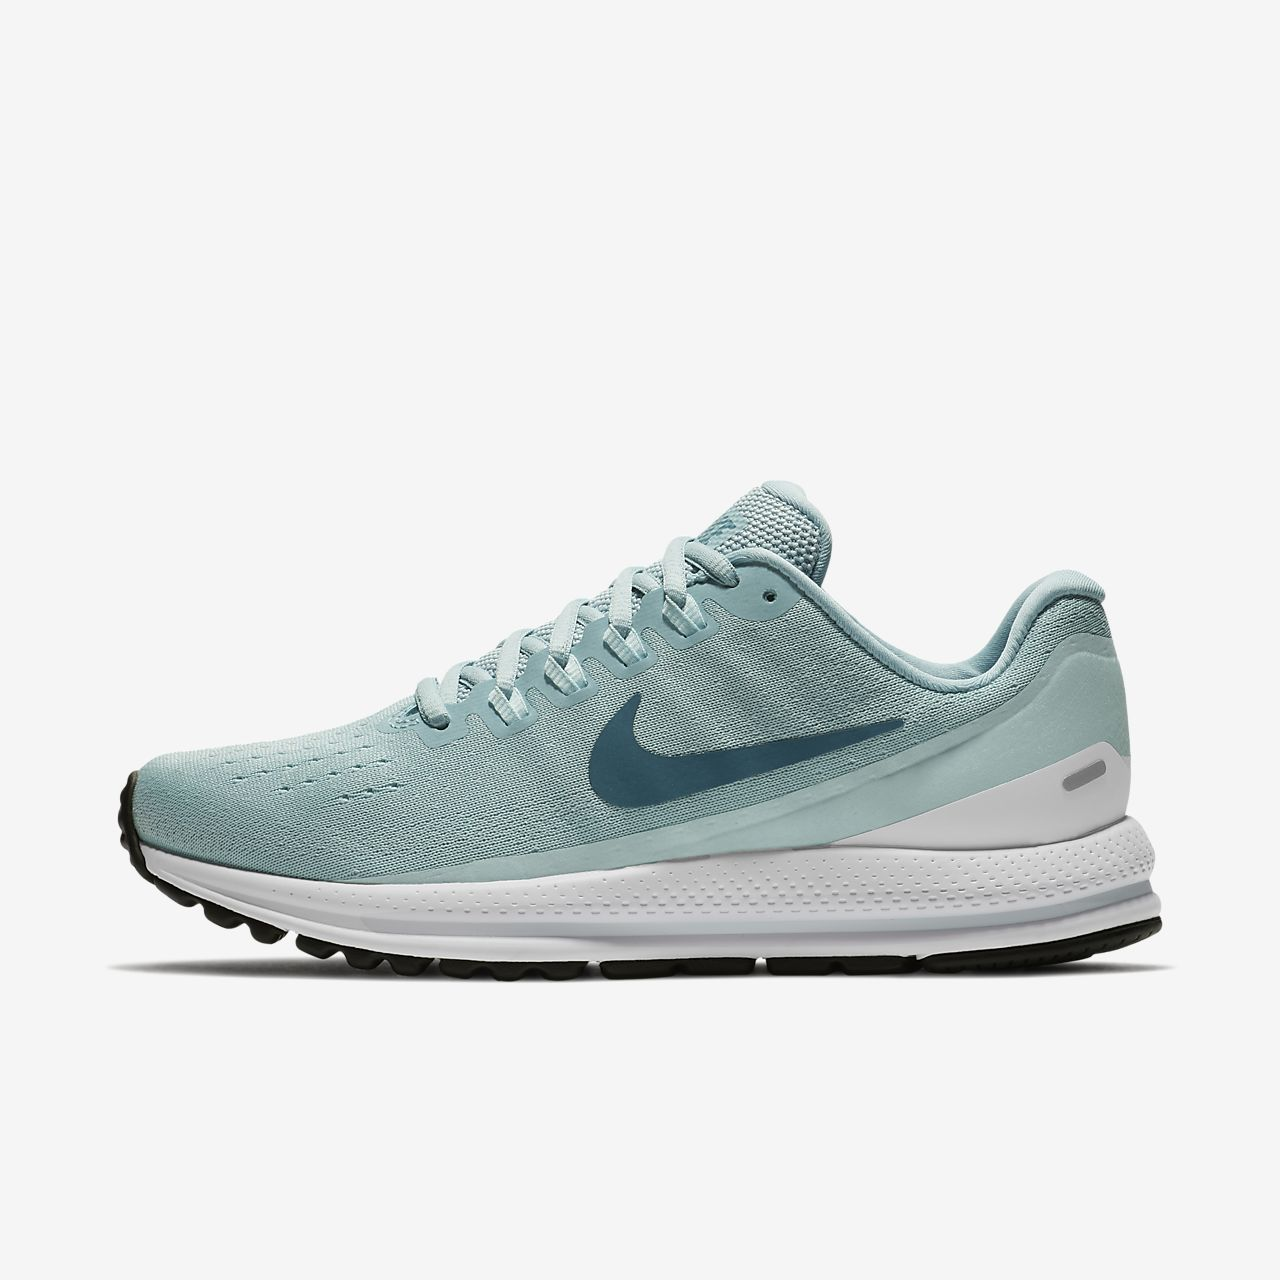 0cf32645477c Nike Air Zoom Vomero 13 Women s Running Shoe. Nike.com BE